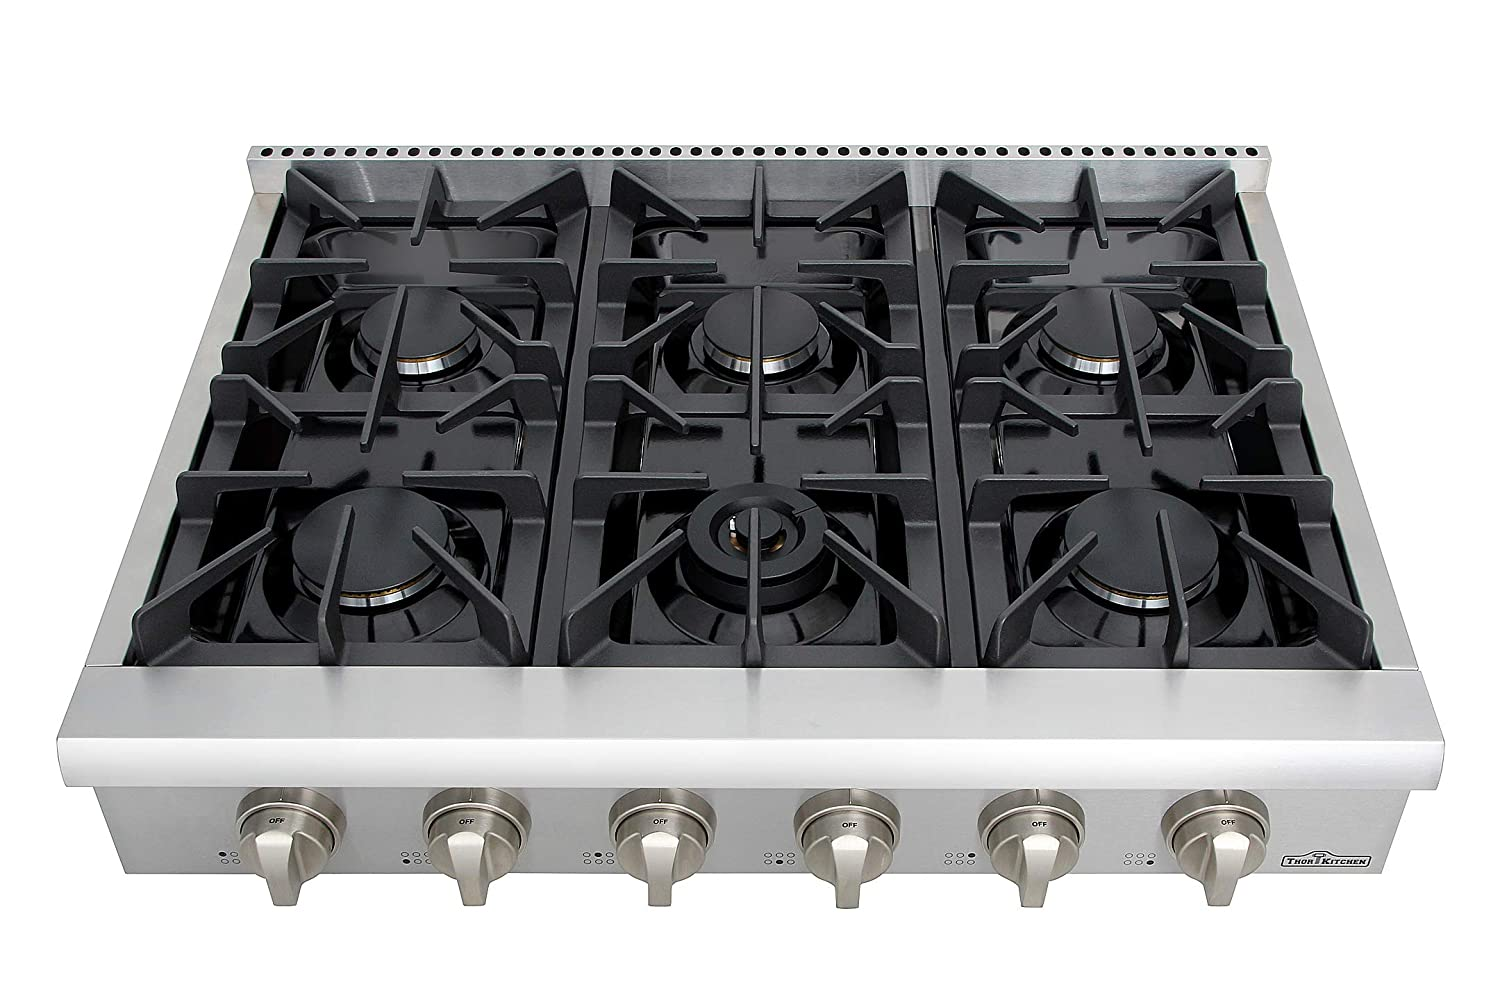 Thor Kitchen 36 High-end Modern Gas Rangetop European Style 6 Burners Built-in Stainless Steel Cooktop Gas Hob for Kitchen HRT3618U